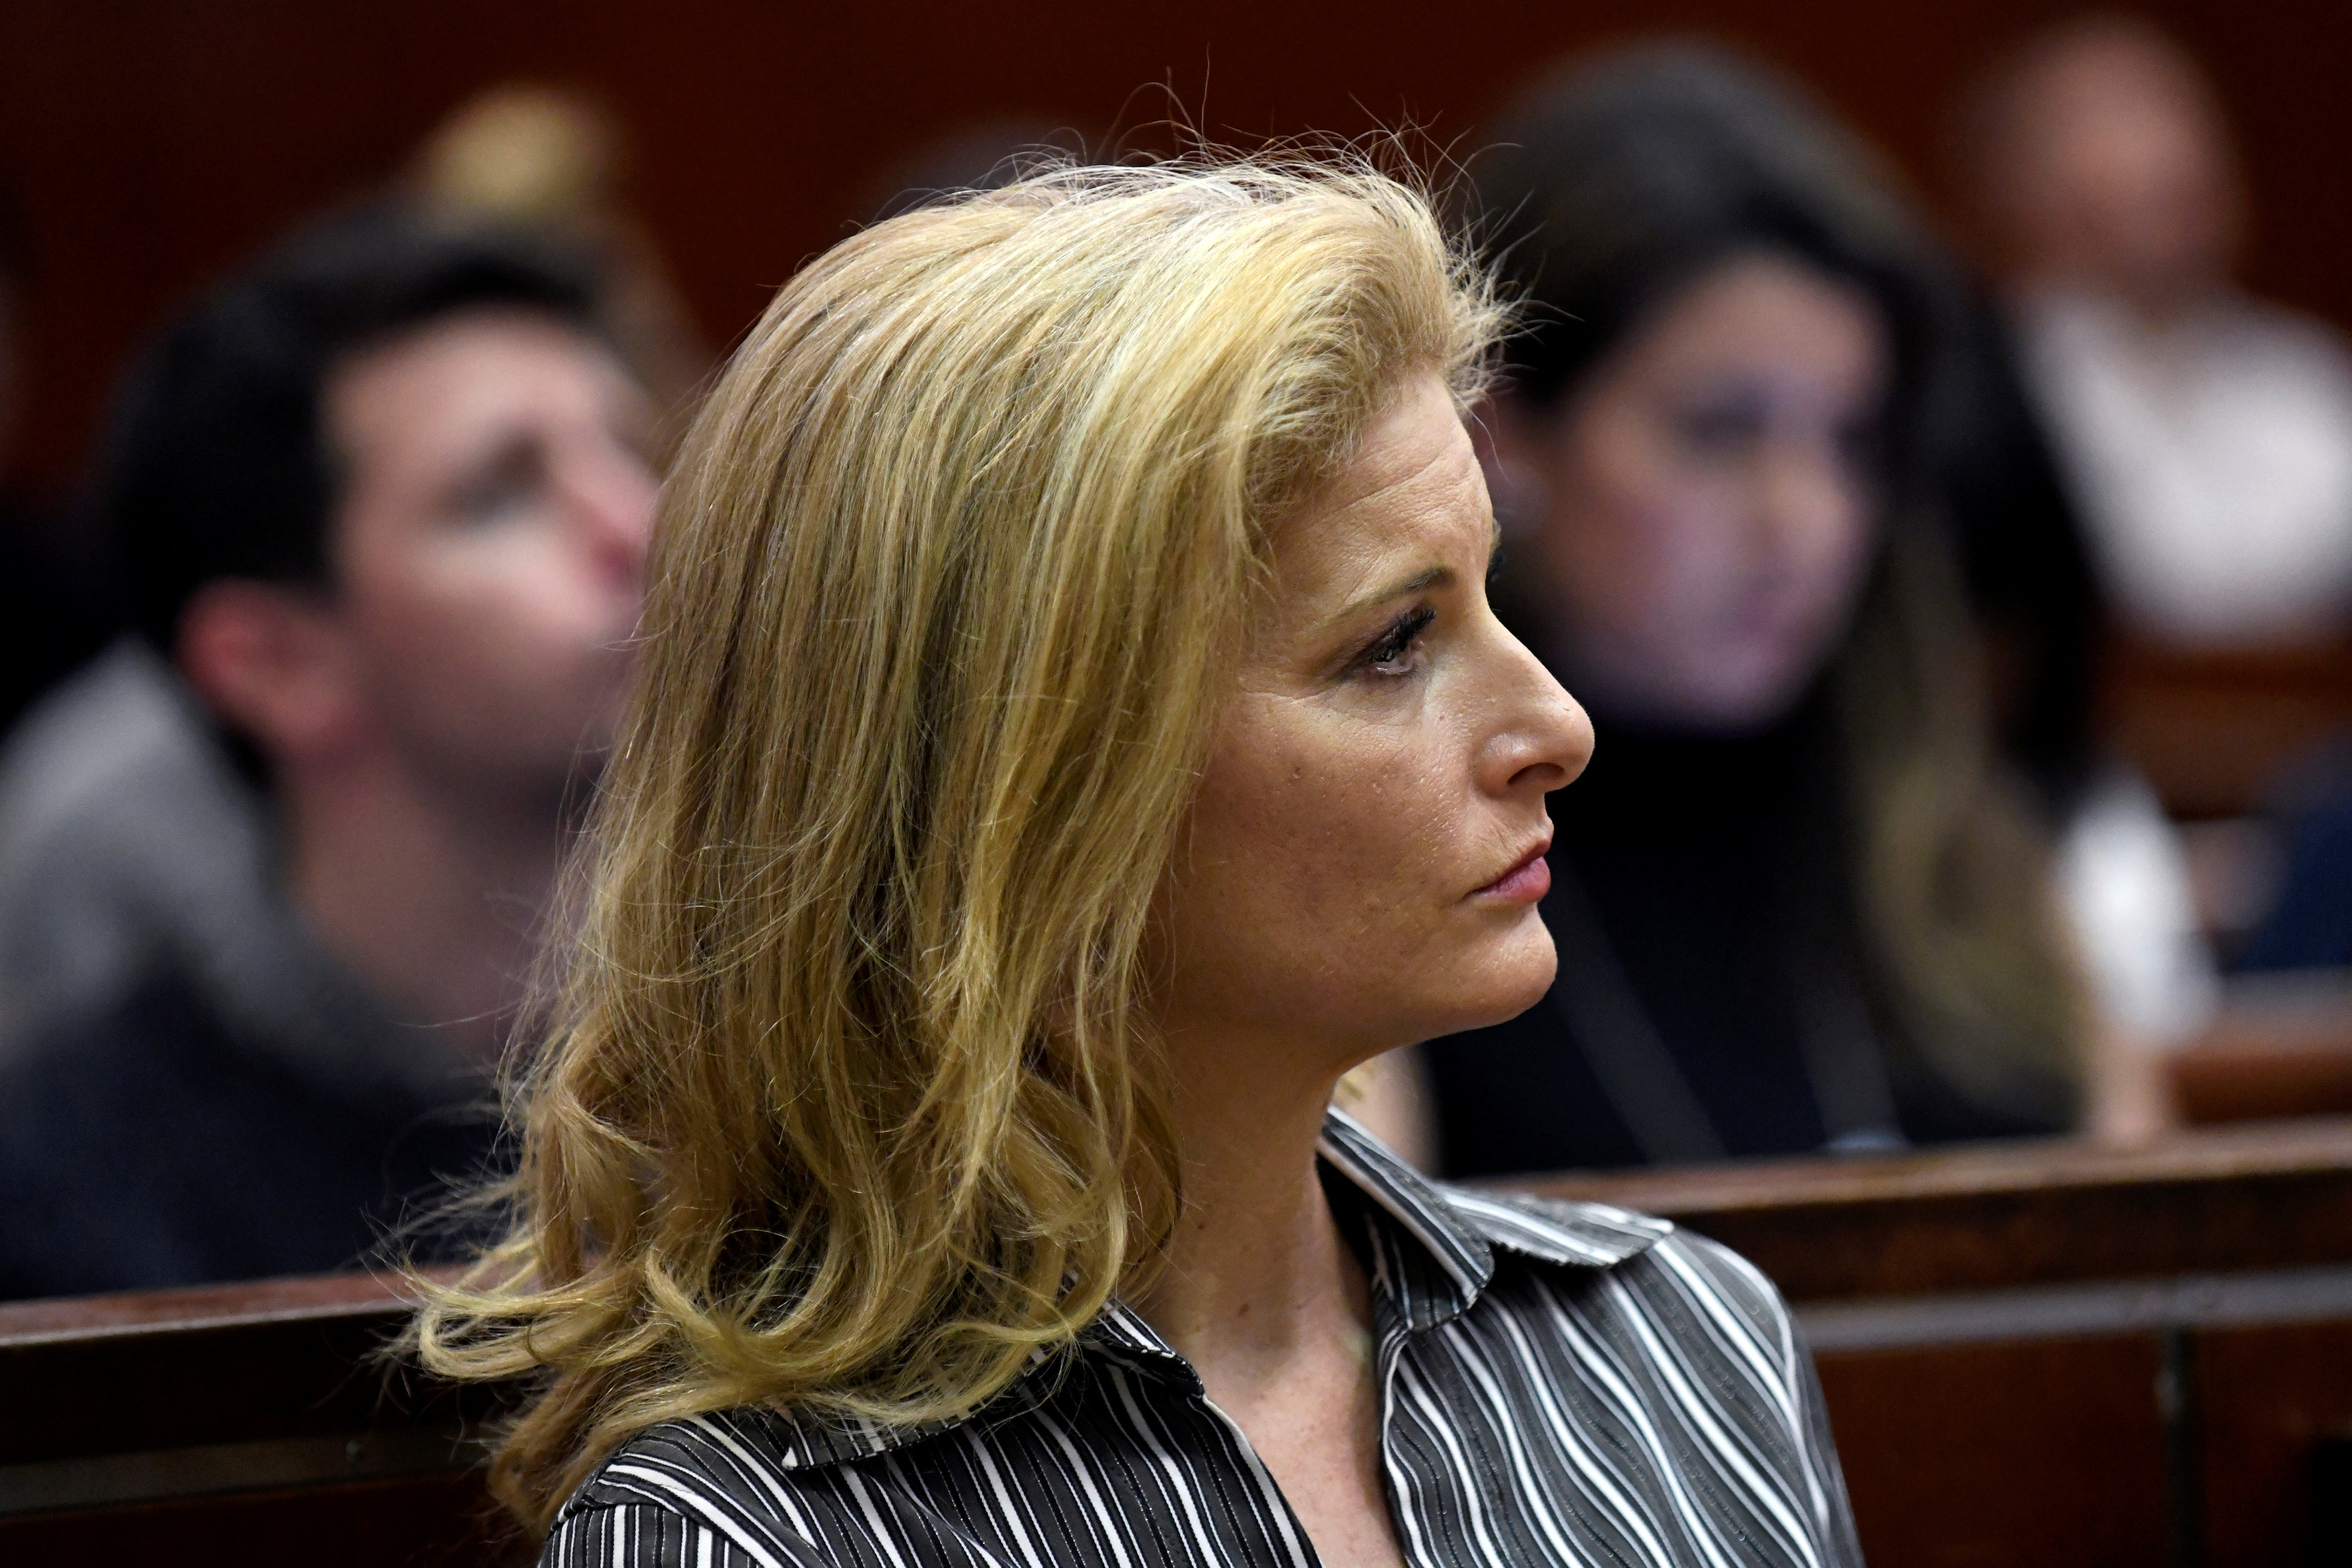 Summer Zervos, a former contestant on 'The Apprentice', appears in New York State Supreme Court during a hearing on a defamation case against US President Donald Trump in Manhattan, New York, December 5, 2017.  — Reuters pic